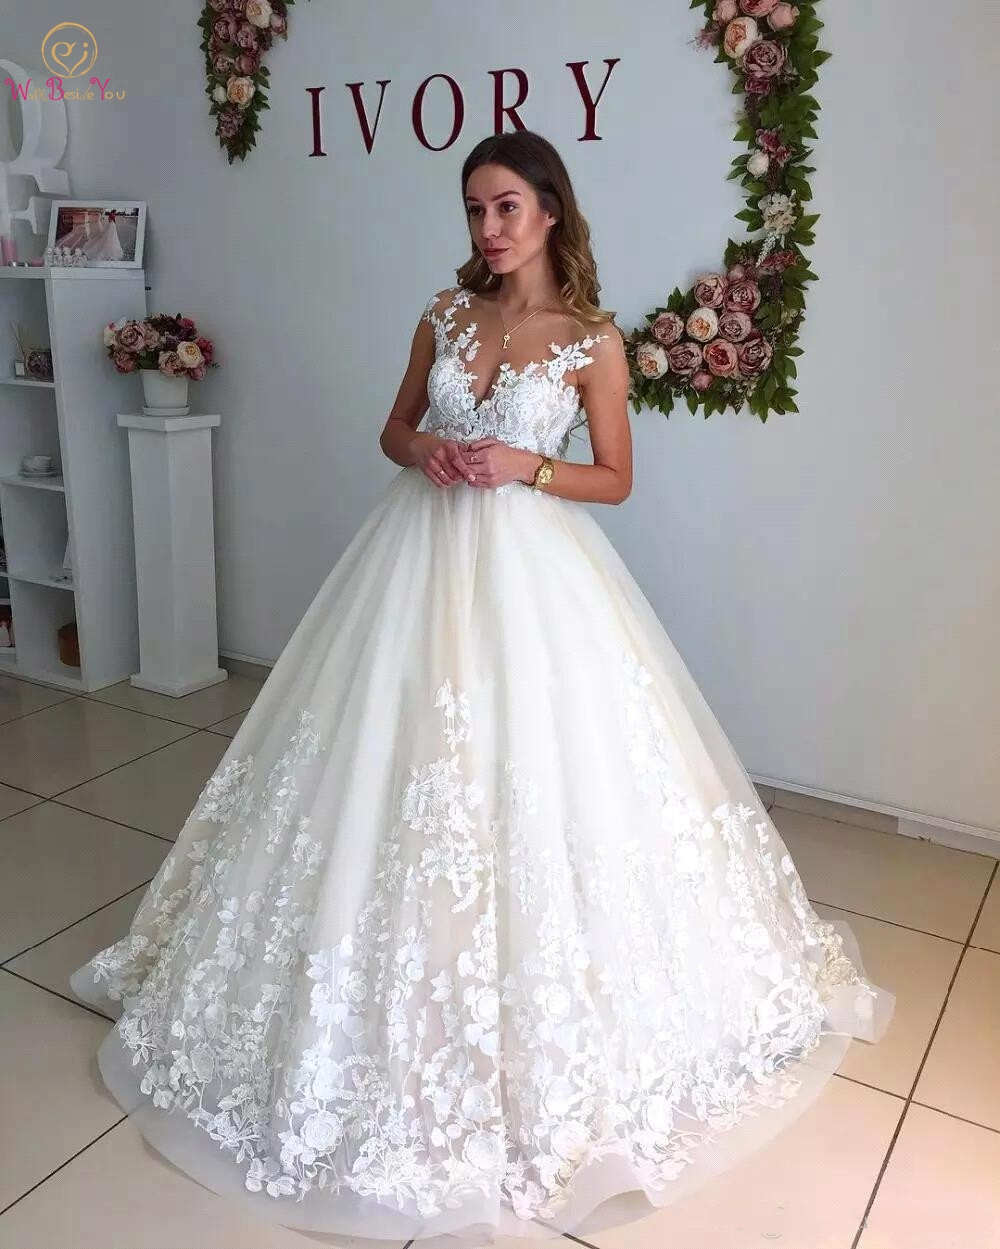 2019 Pregnant Wedding Dresses Elegant Lace Sheer Neck Capped Sleeve Maternity Backless Plus Size Customize Bridal Ball Gown